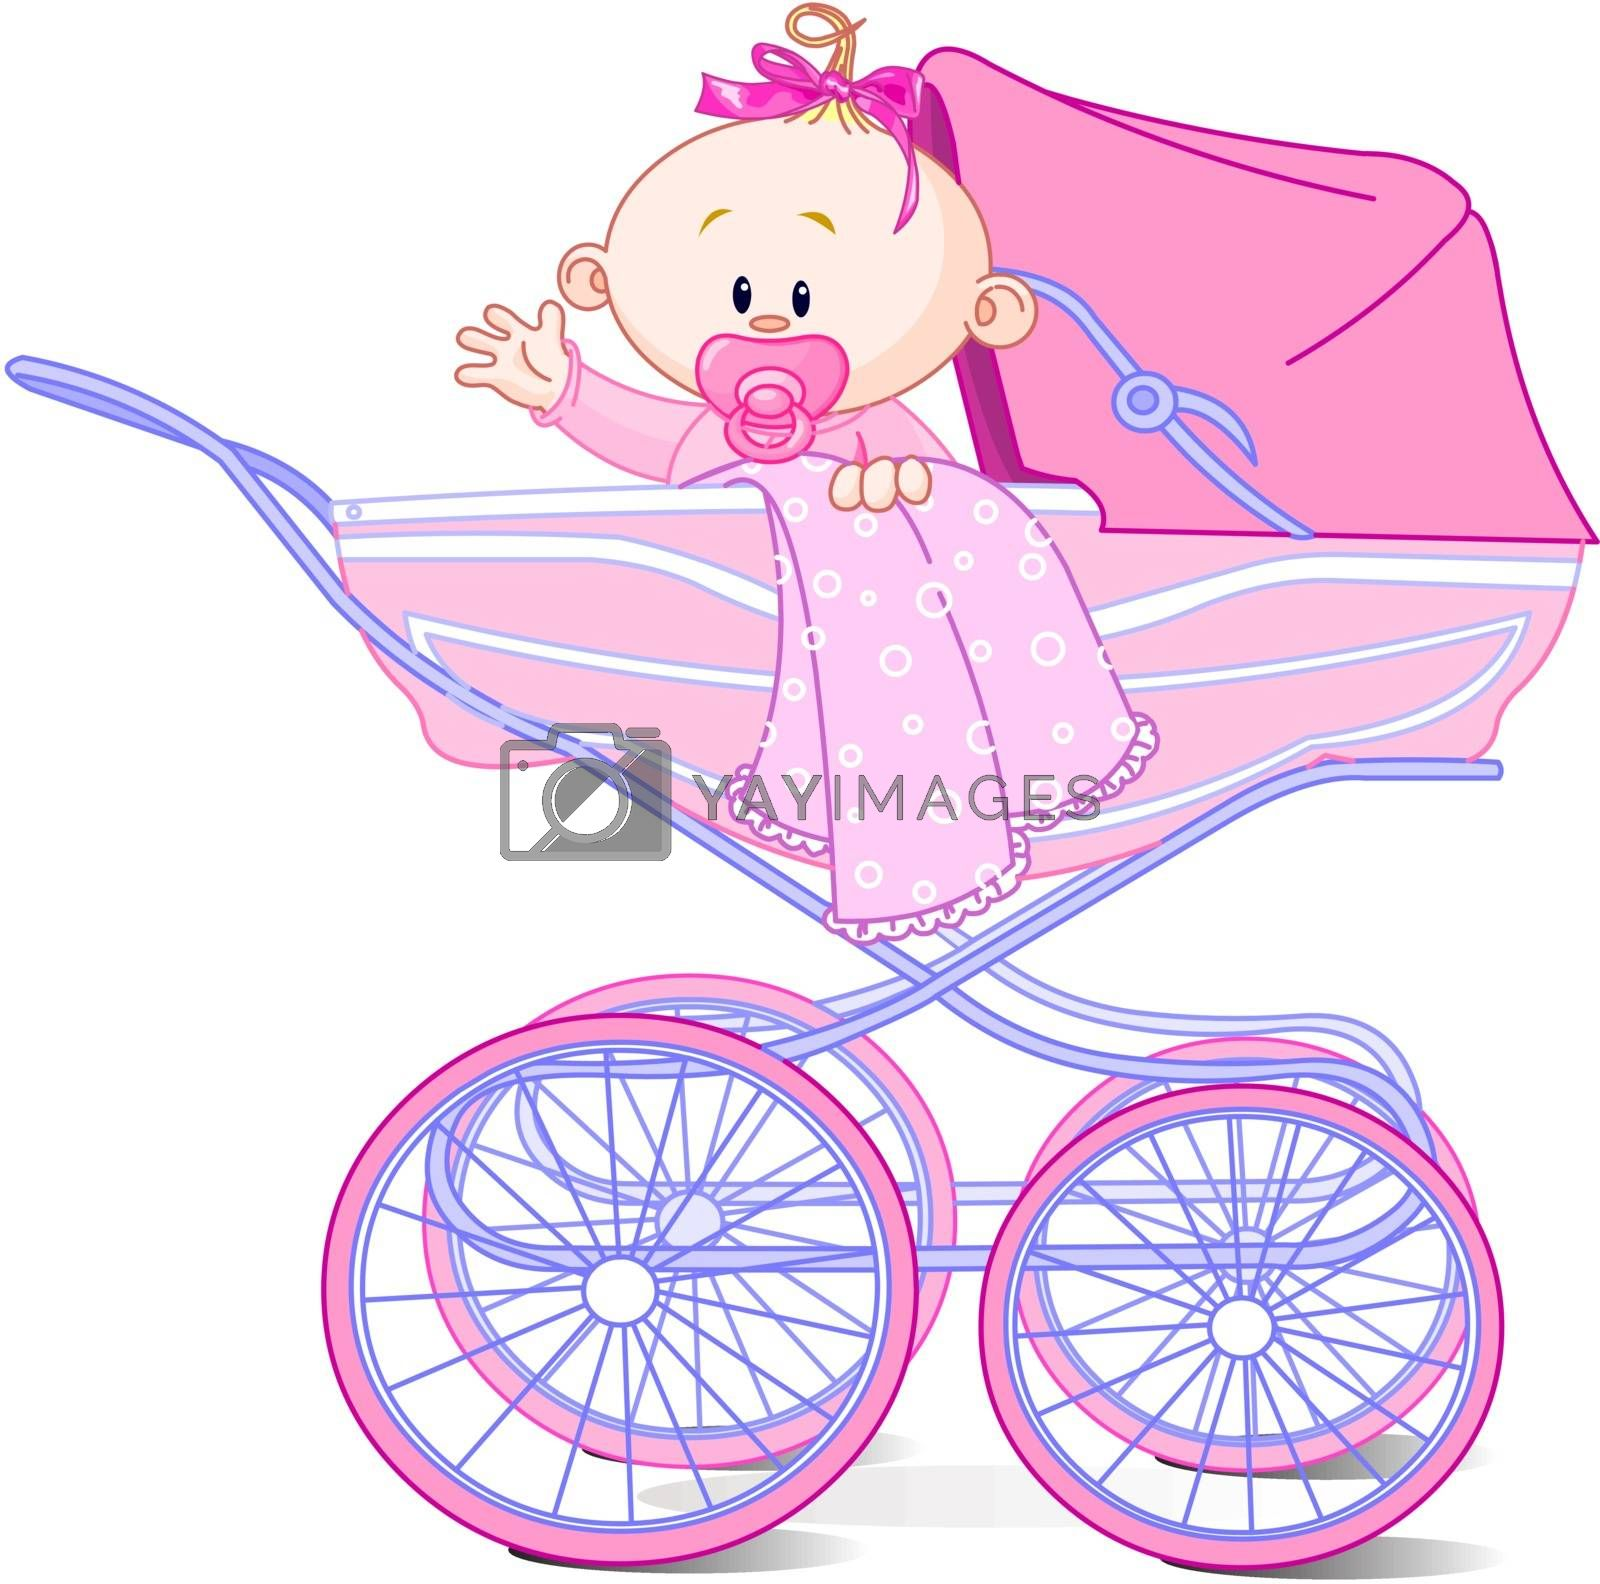 Royalty free image of Baby girl in carriage by Dazdraperma